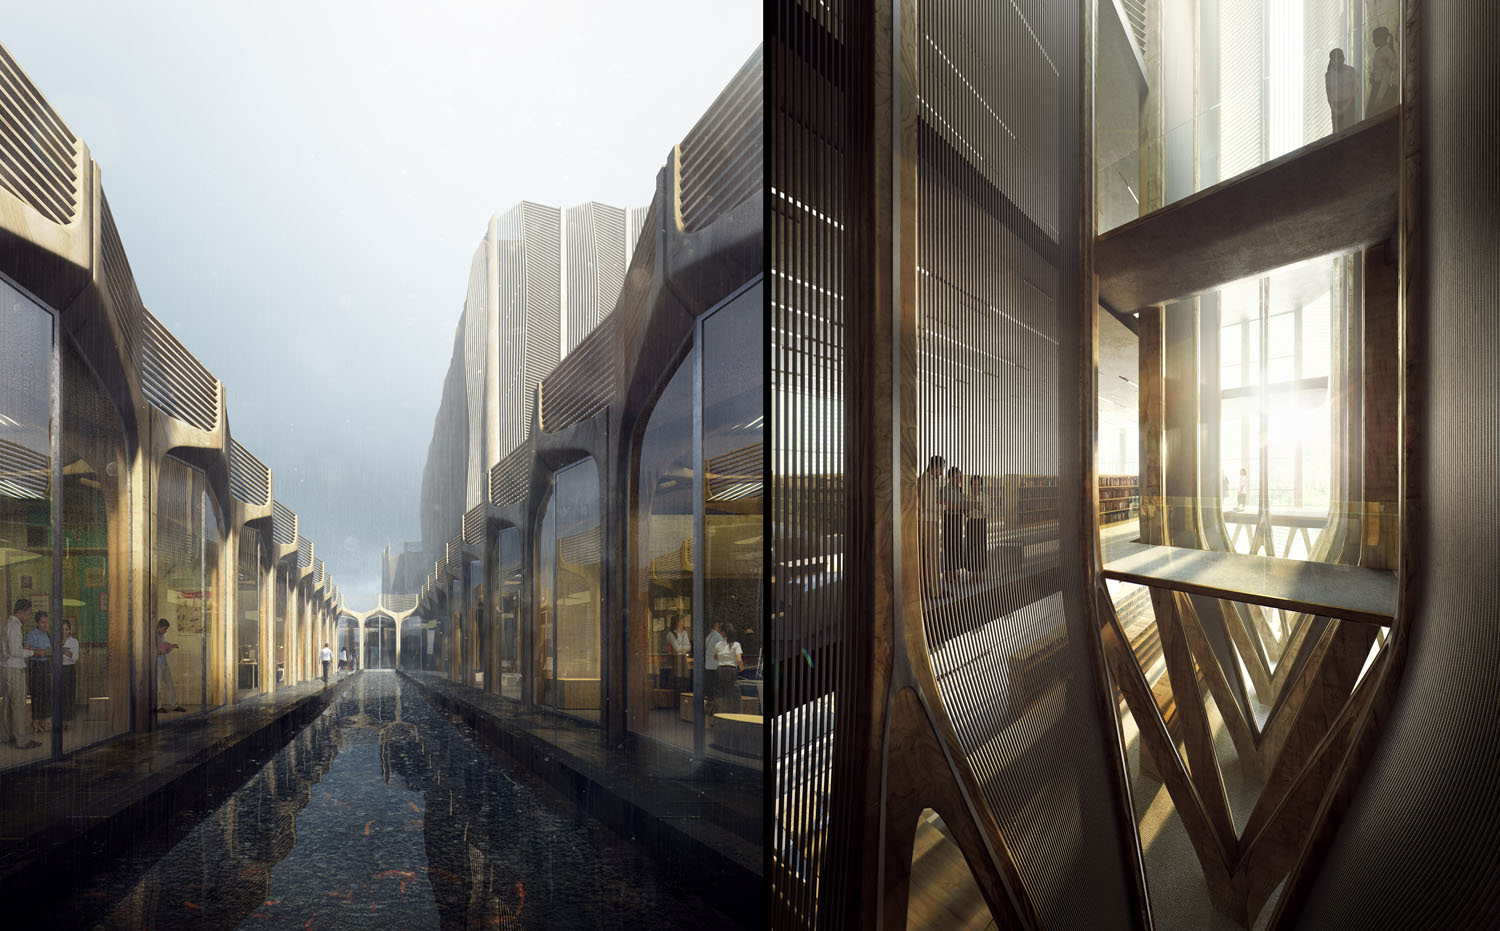 mm_Sleuk Rith Institute in Cambodia design by Zaha Hadid Architects_06